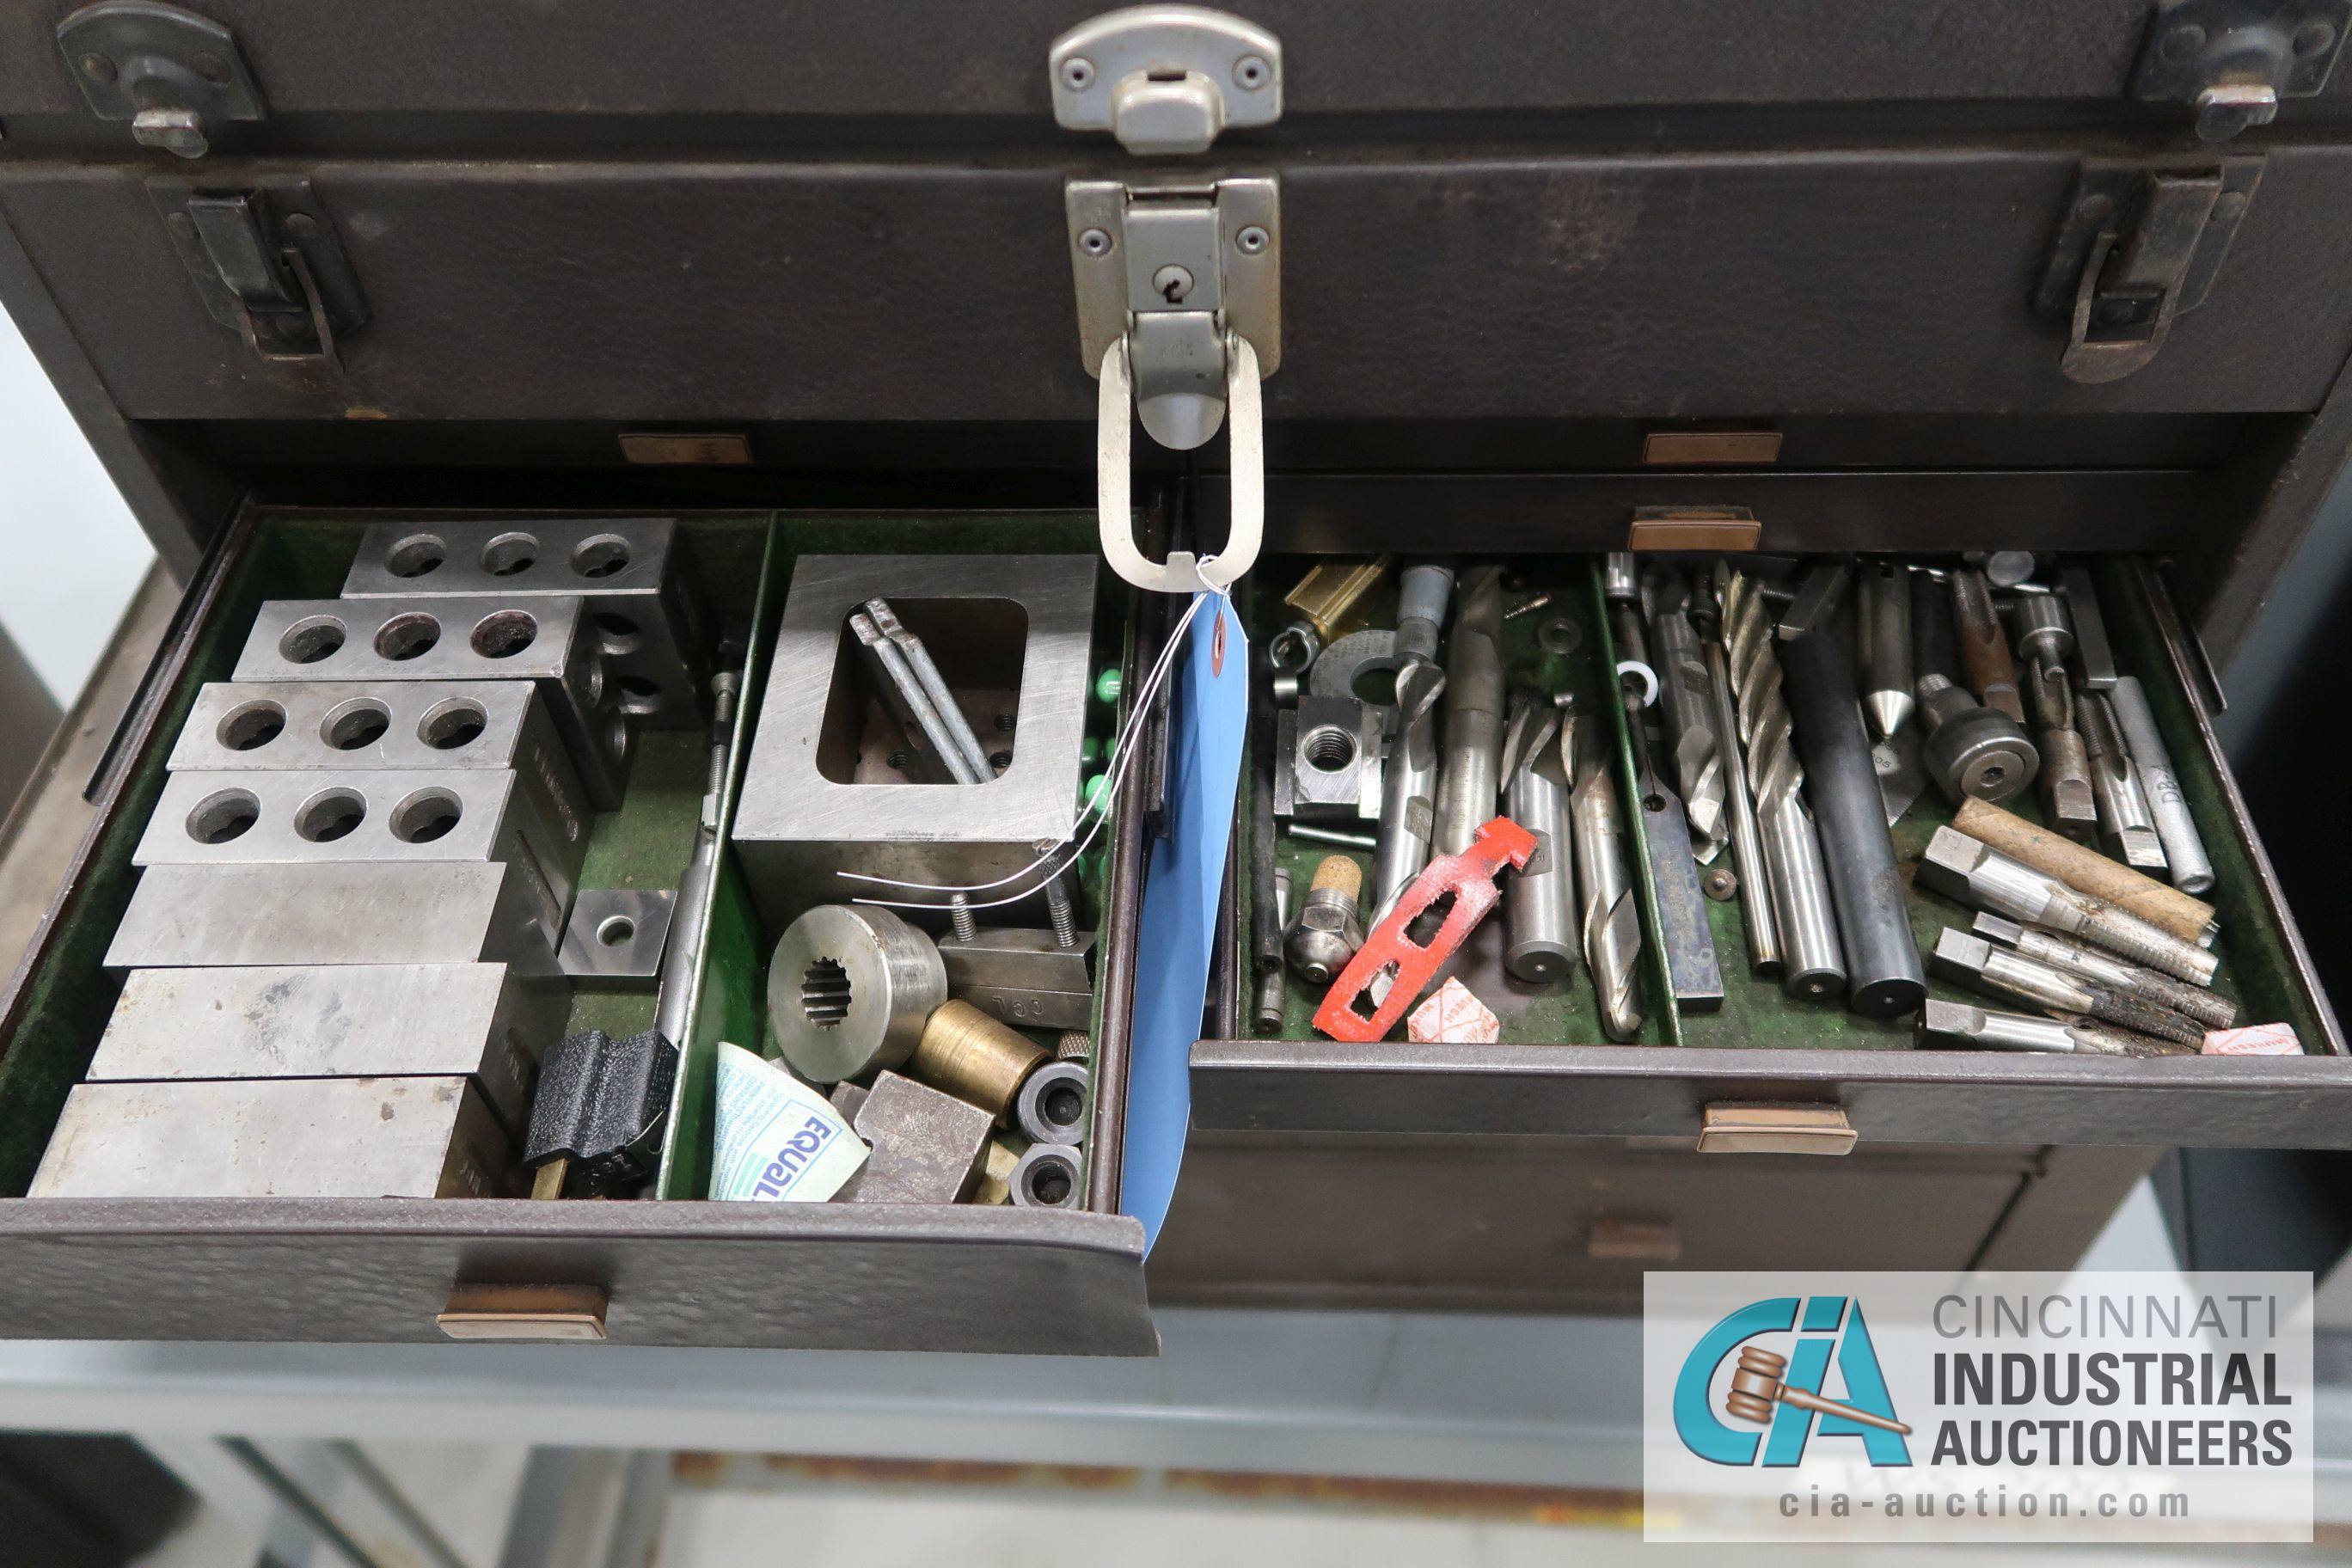 KENNEDY MACHINIST TOOL CHESTS WITH MISCELLANEOUS - Image 4 of 7